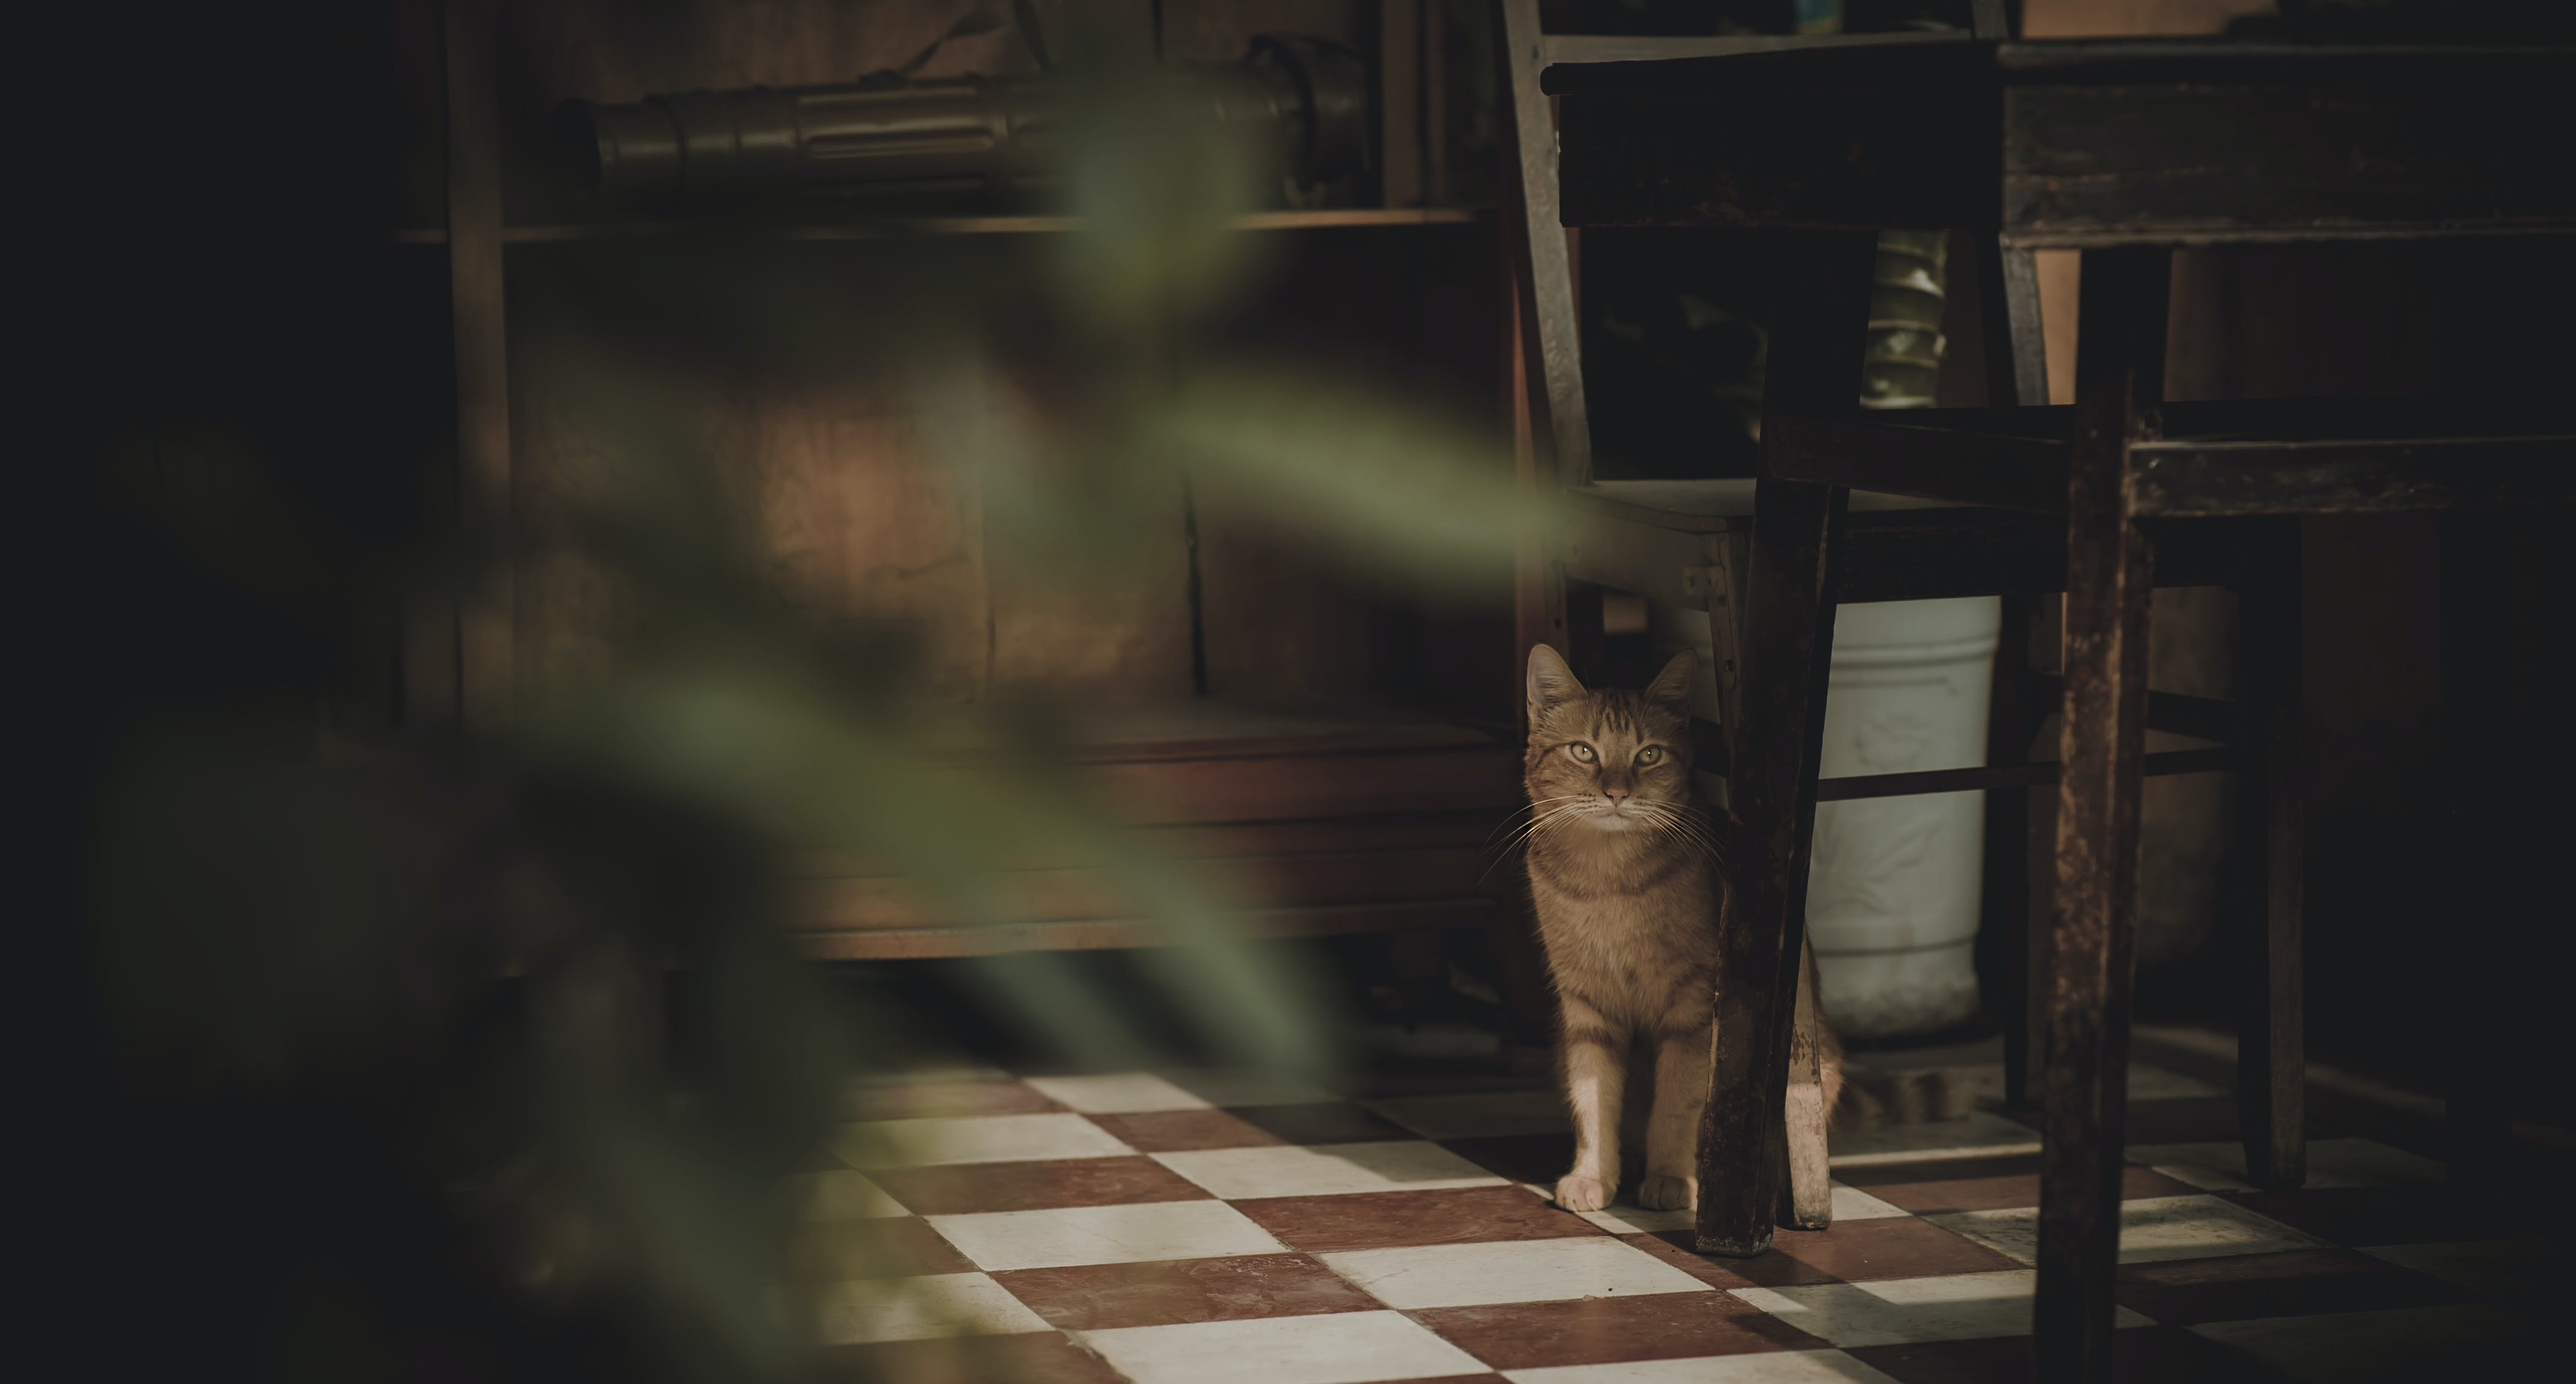 Photography of Cat Near Chair